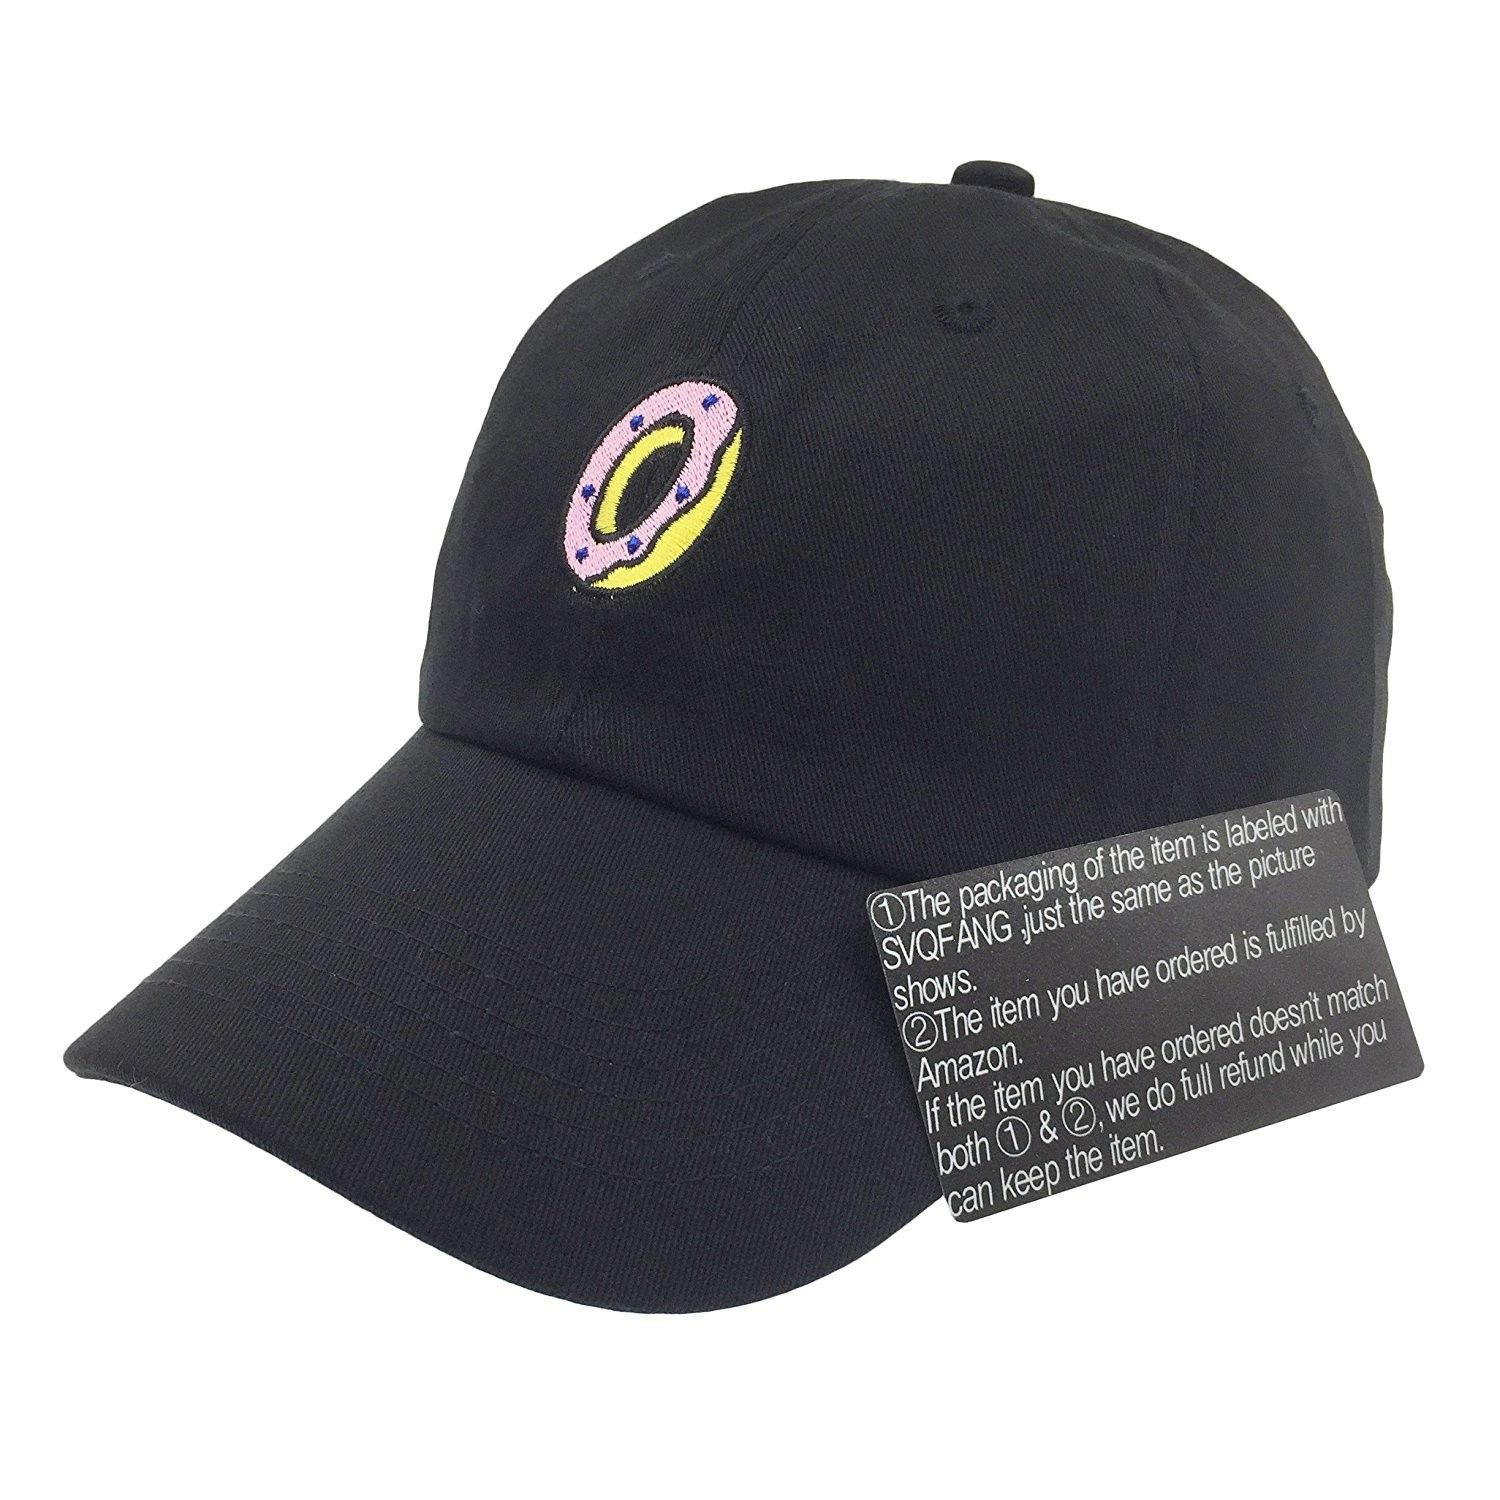 Donut Hat Baseball Cap Dad Hats Embroidered Floppy For Men Women  Unstructured - Black - C4185EX4094 - Hats   Caps 1b59cb218c6d